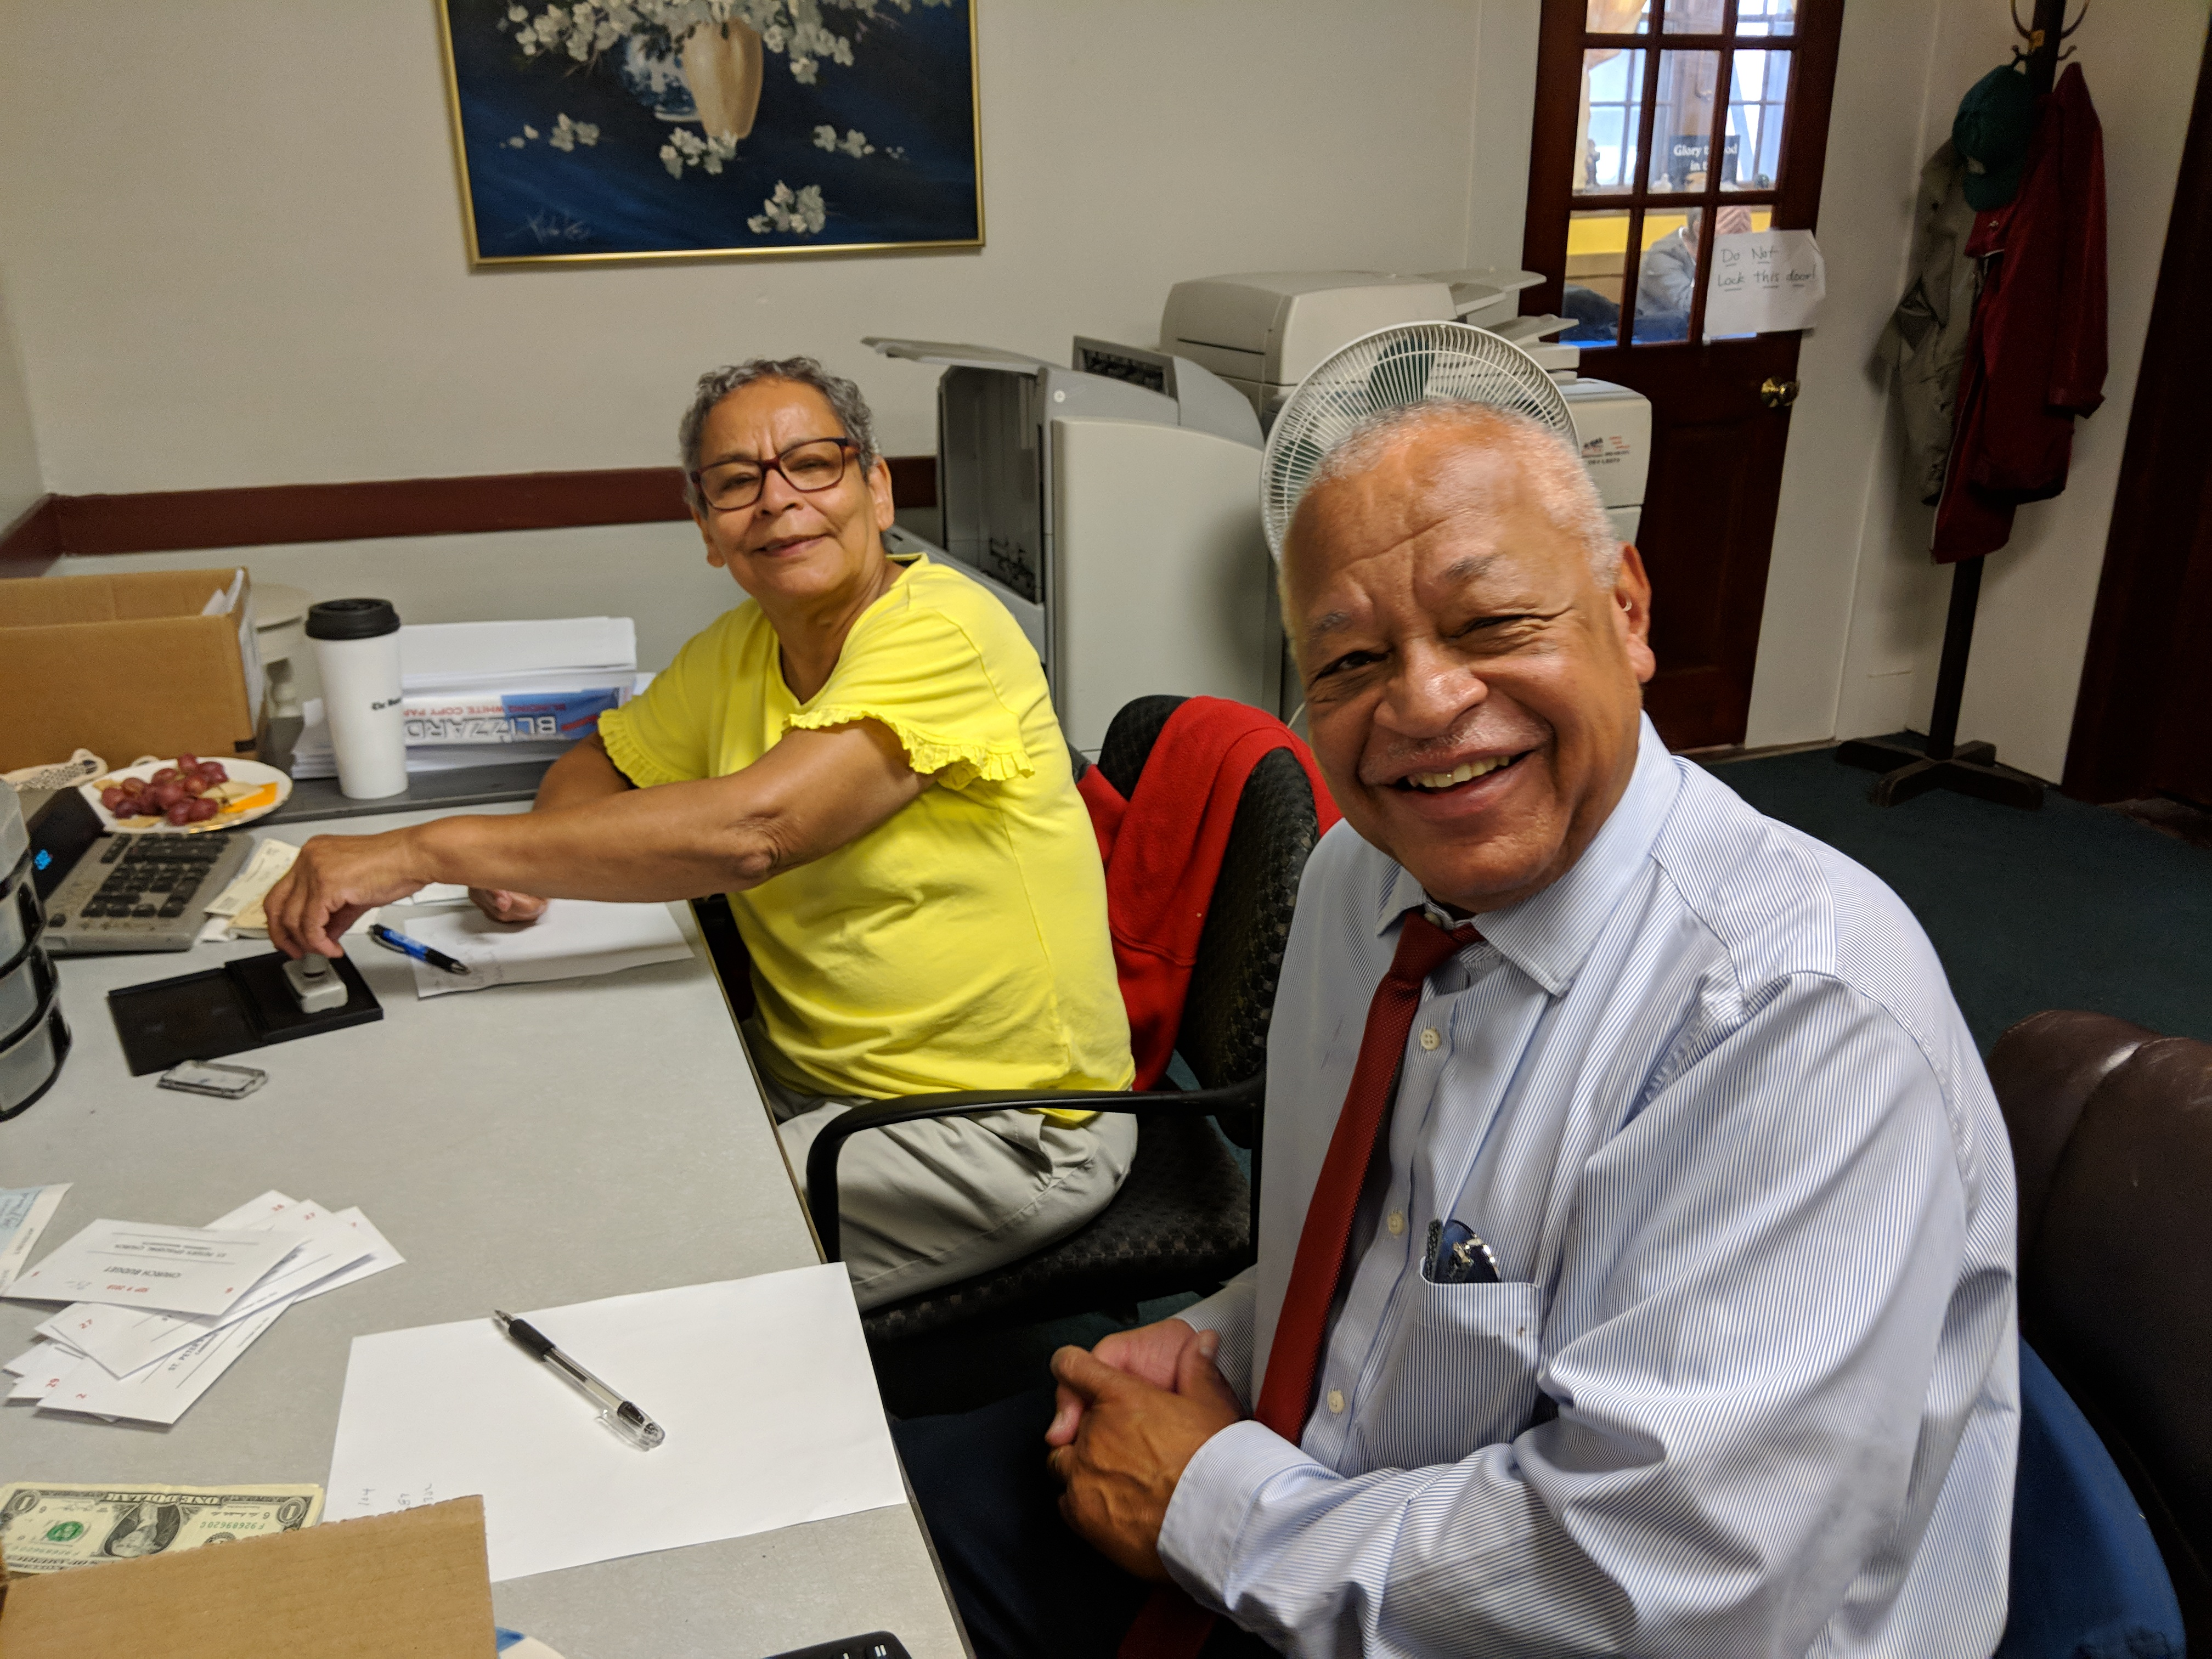 Our collectors counting a Sunday Collection in the church office